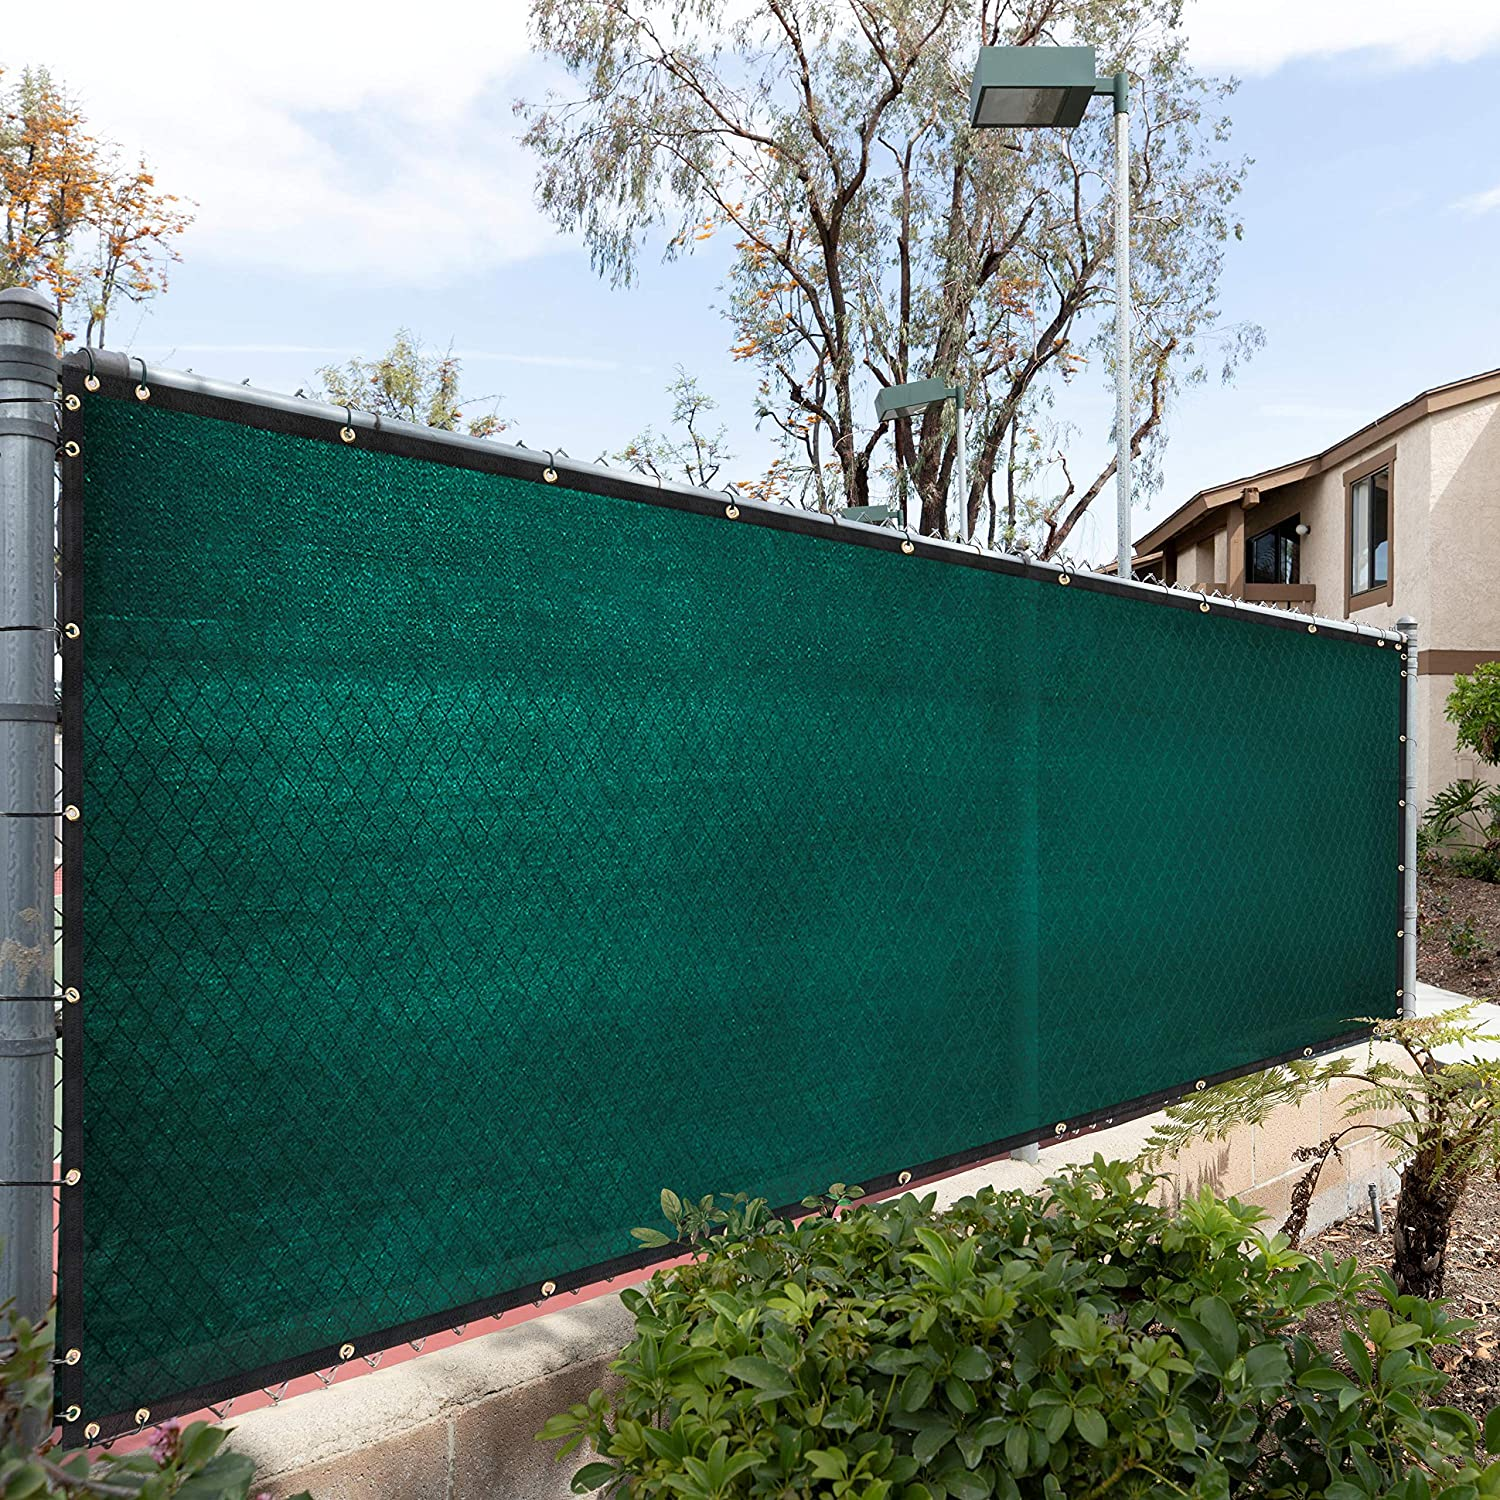 Royal Shade 6' x 10' Green Fence Max 69% OFF Screen Cover Privacy SALENEW very popular! Windscreen